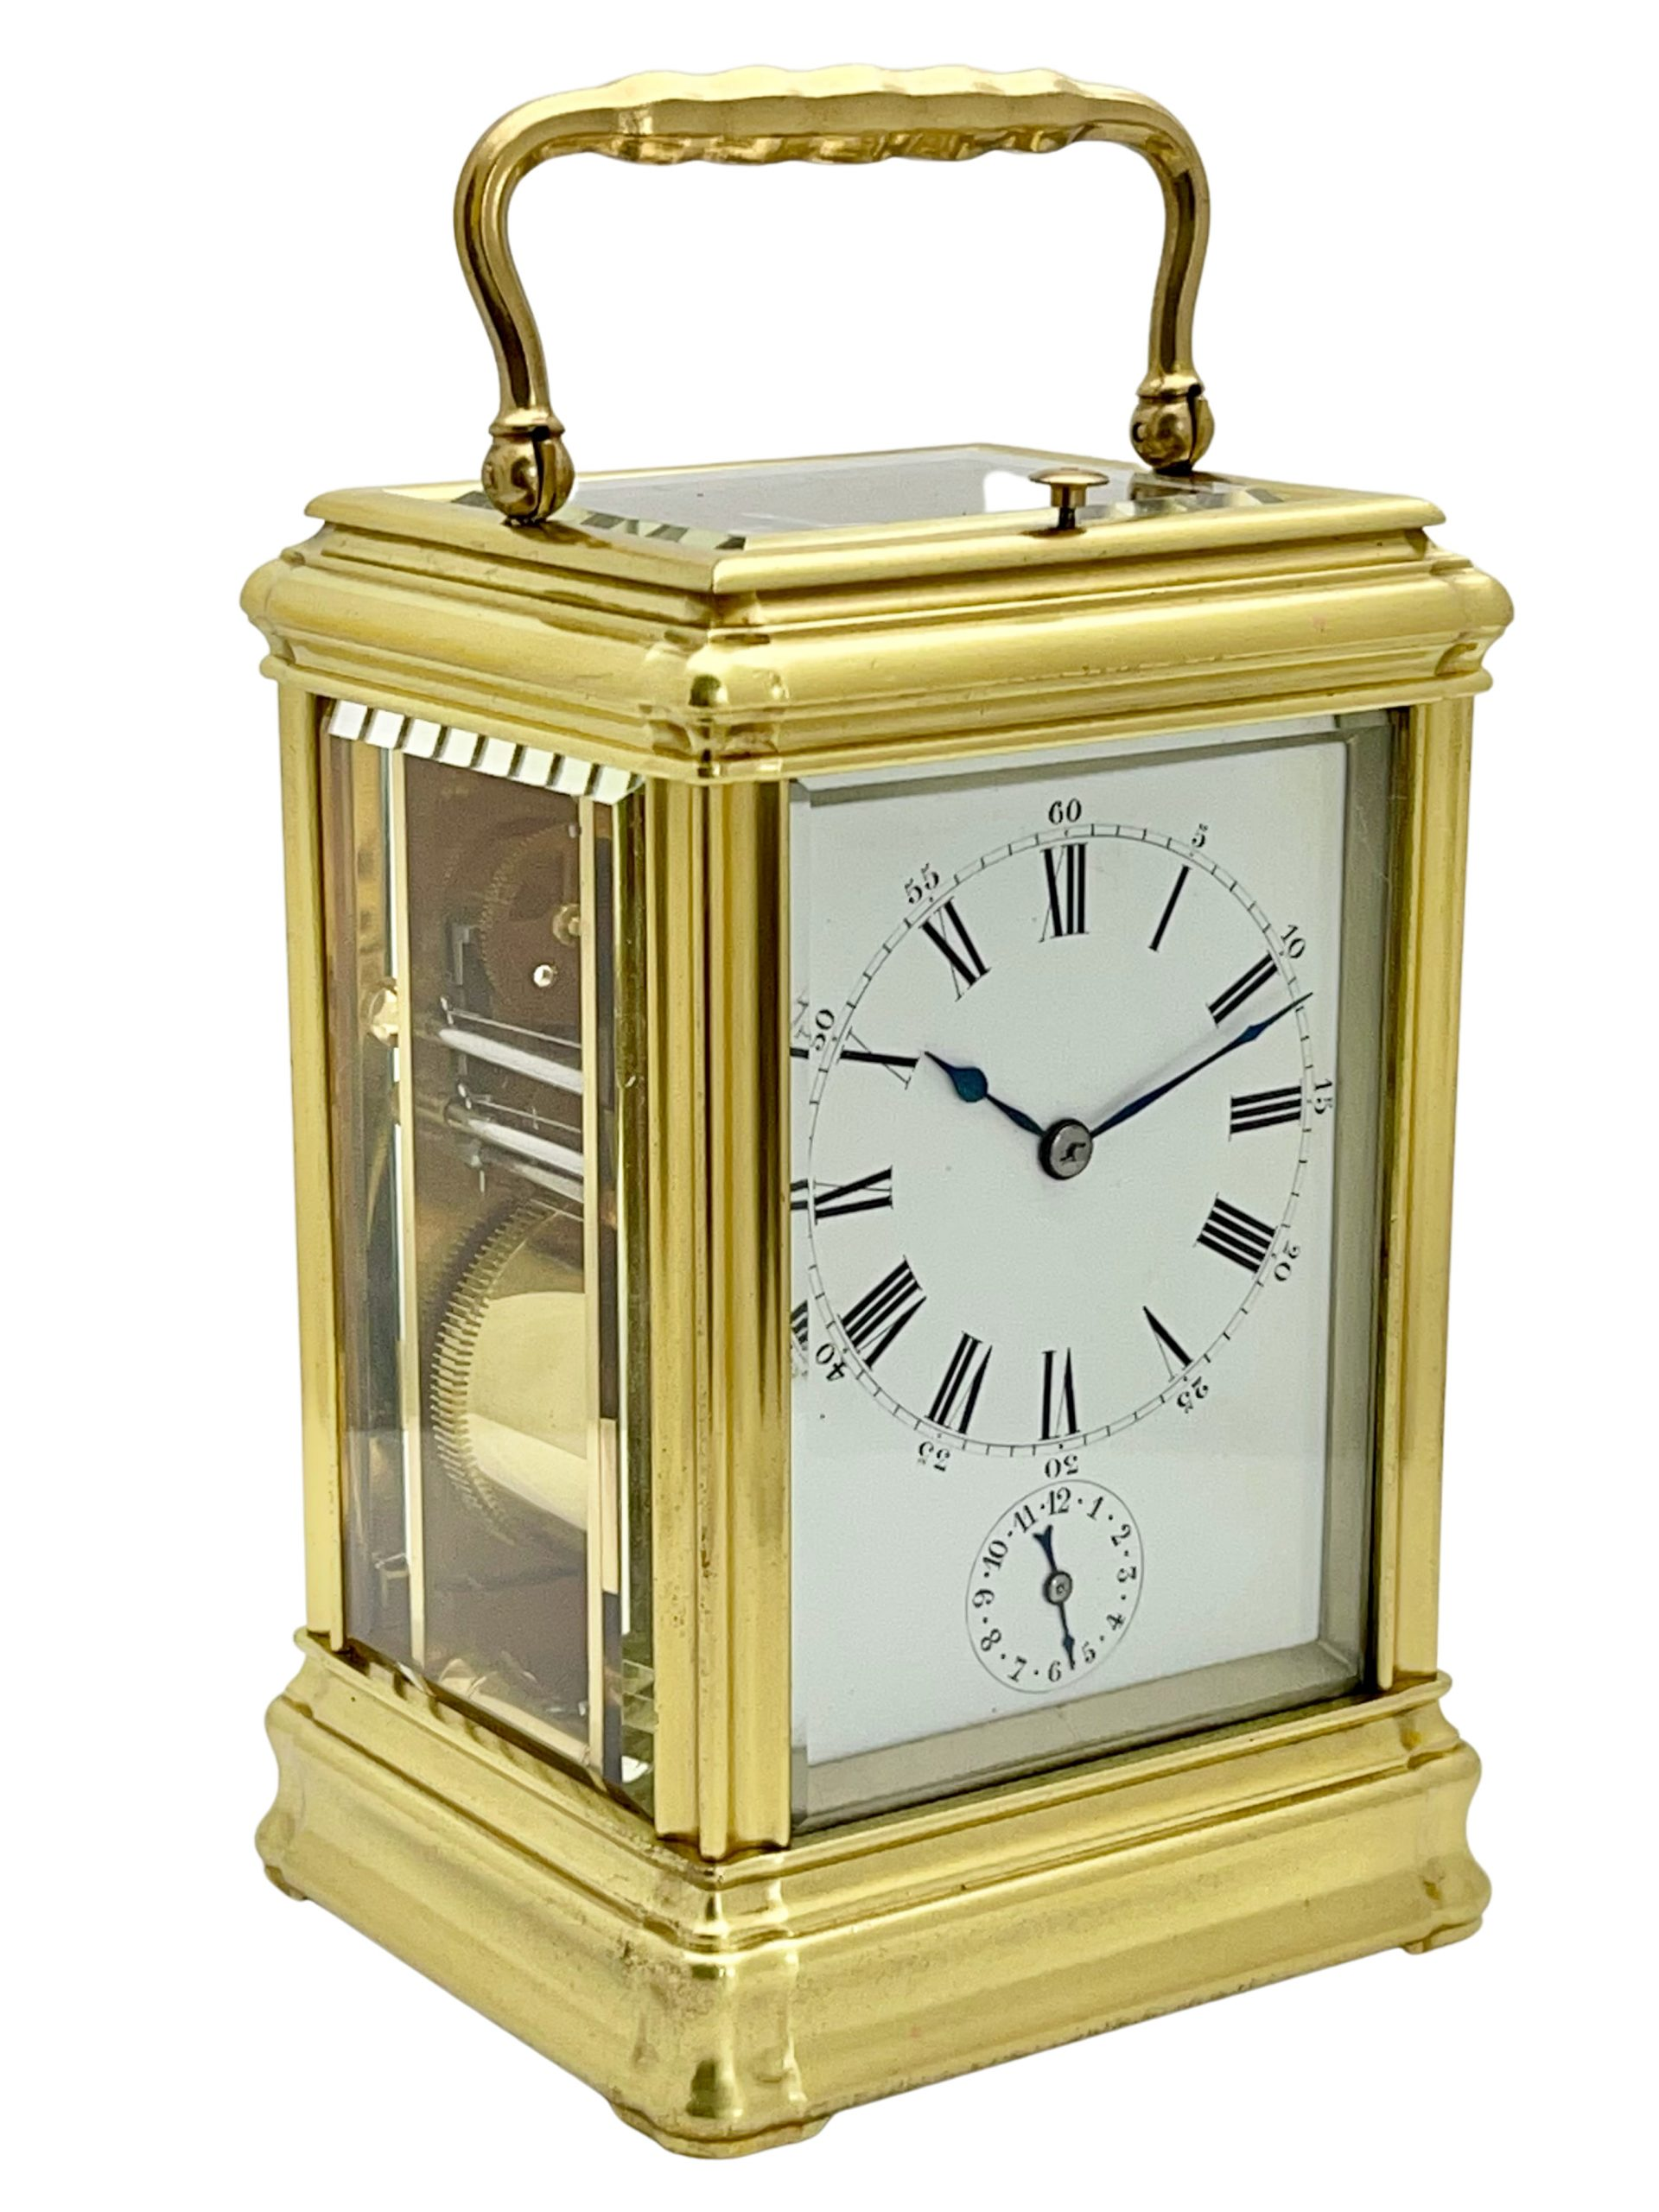 Antique French eight day grande sonnerie striking and repeating carriage clock